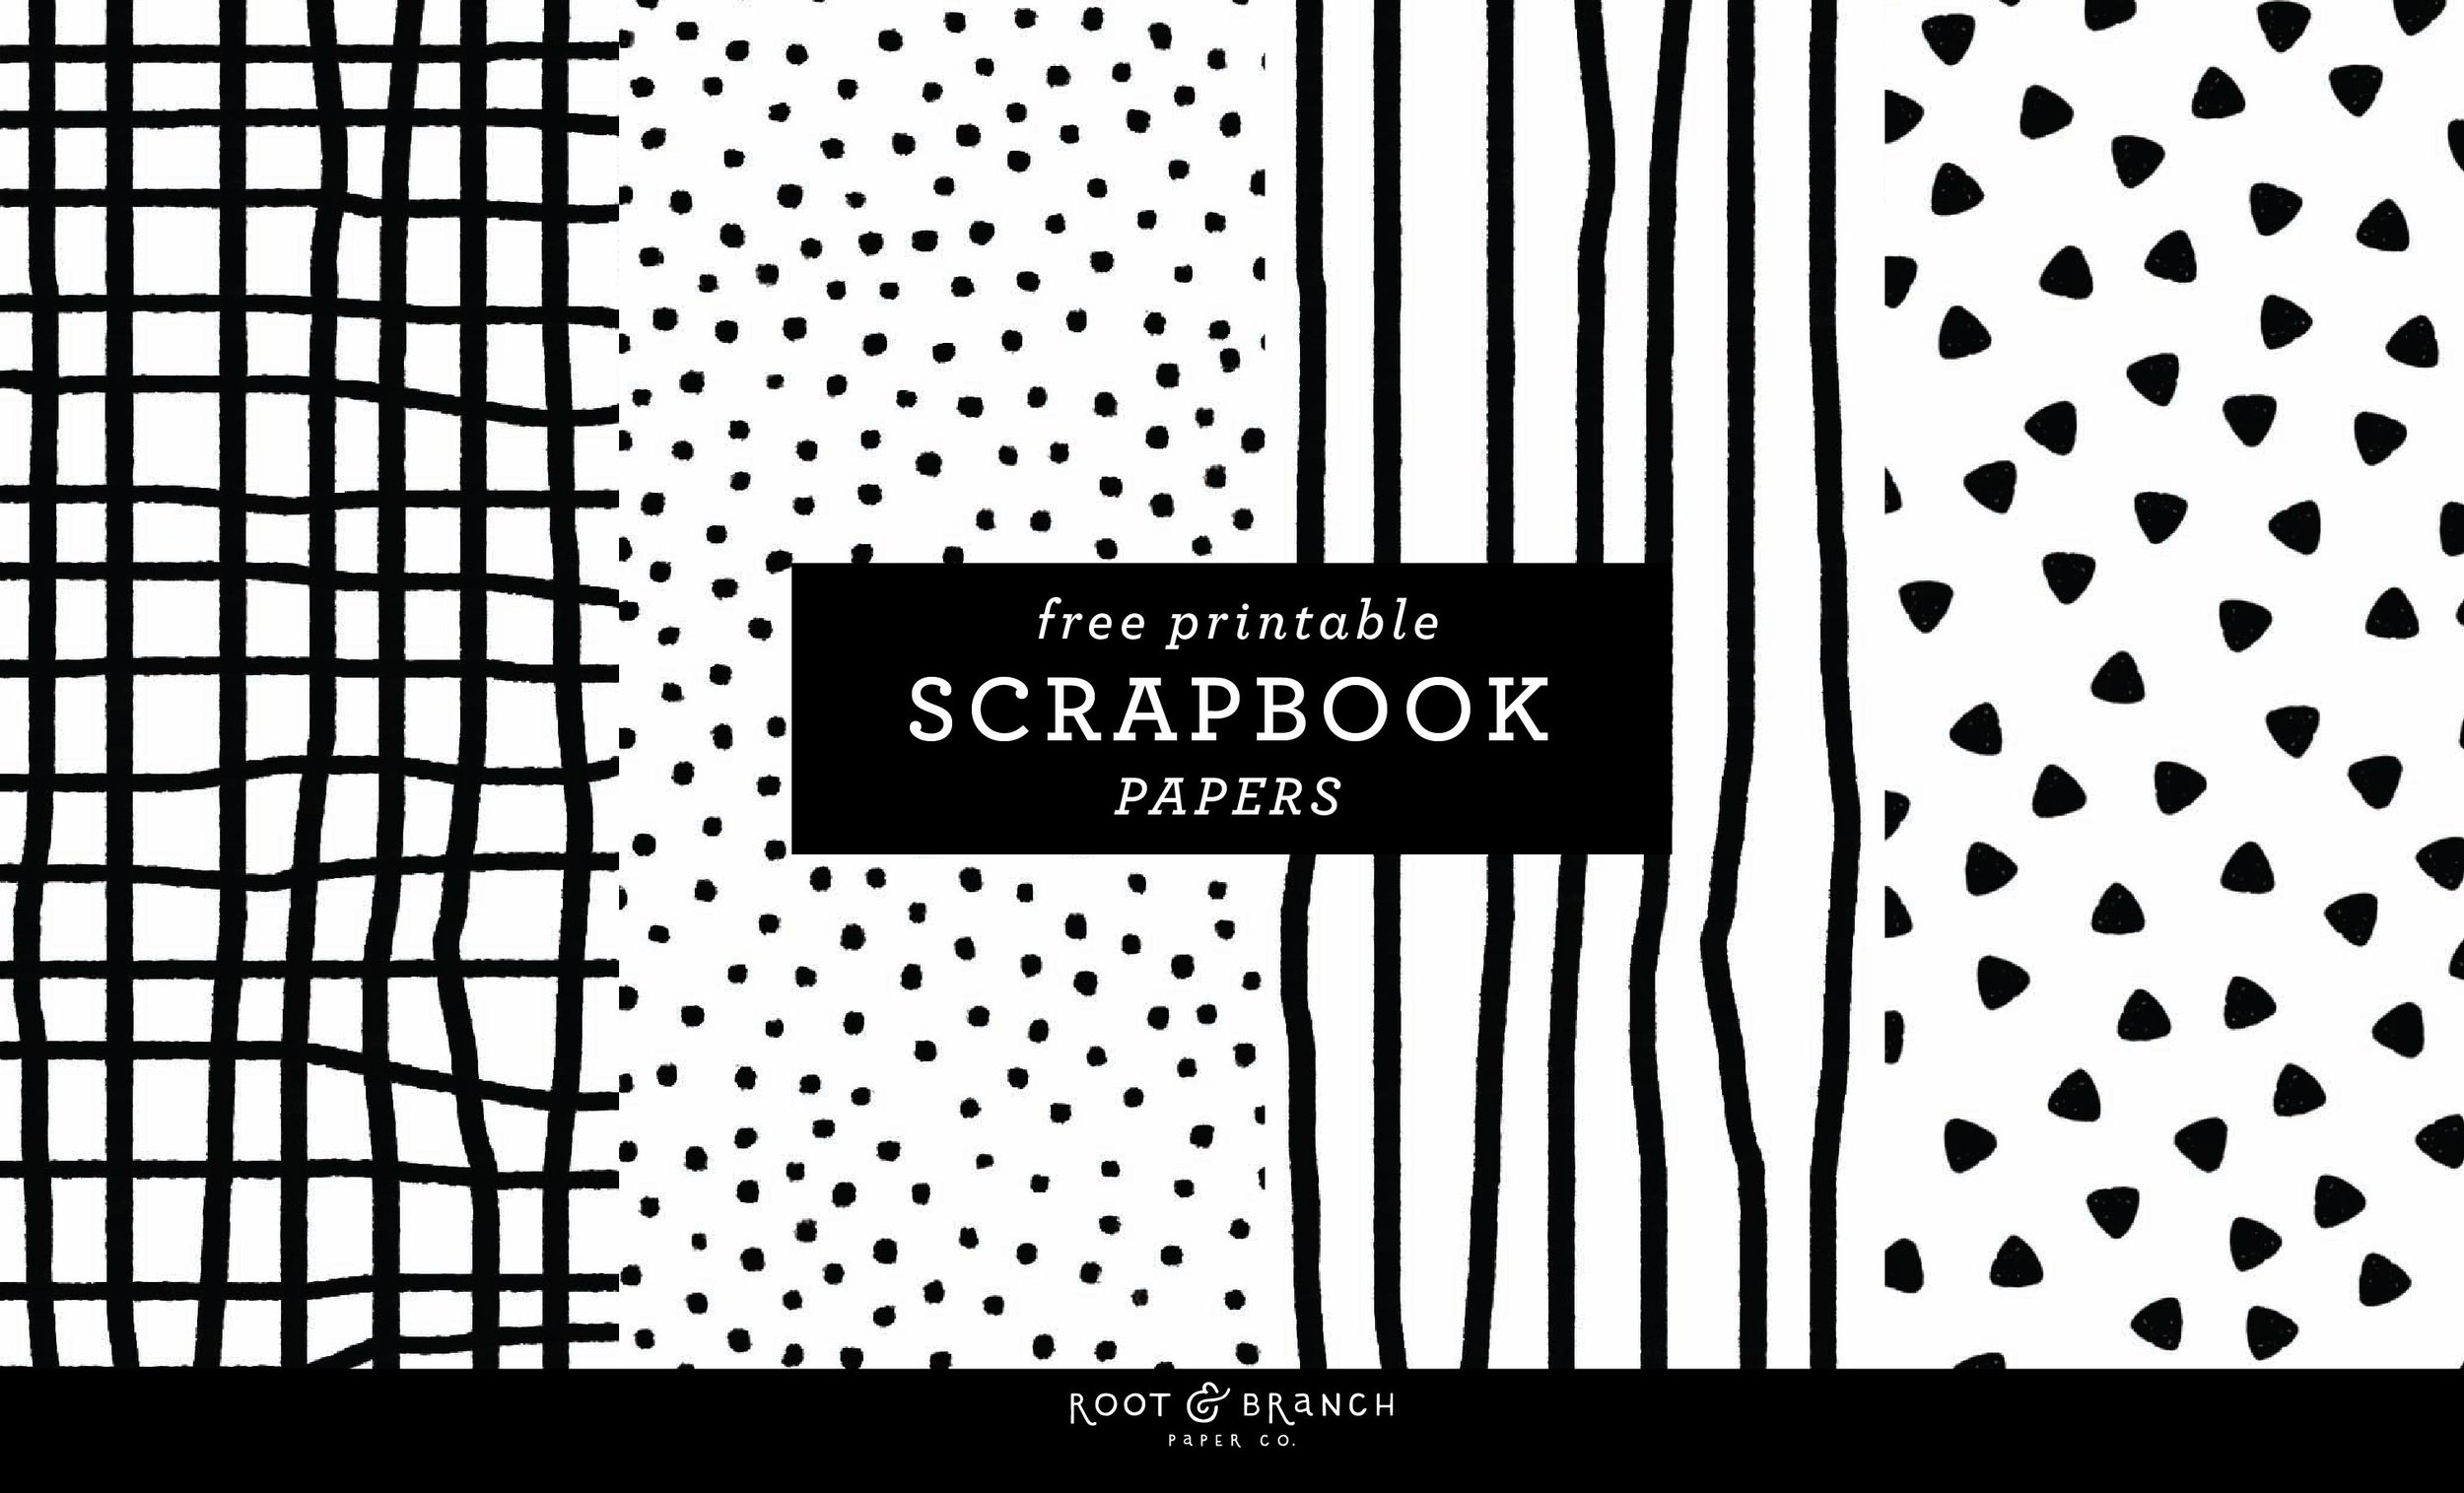 - Free Printable Scrapbook Paper Black and White, Scrapbook Paper Printable PDF Free Download, Scrapbooking Freebies, Printable Scrapbook Paper Designs BW | From the Root & Branch Paper Co. Blog